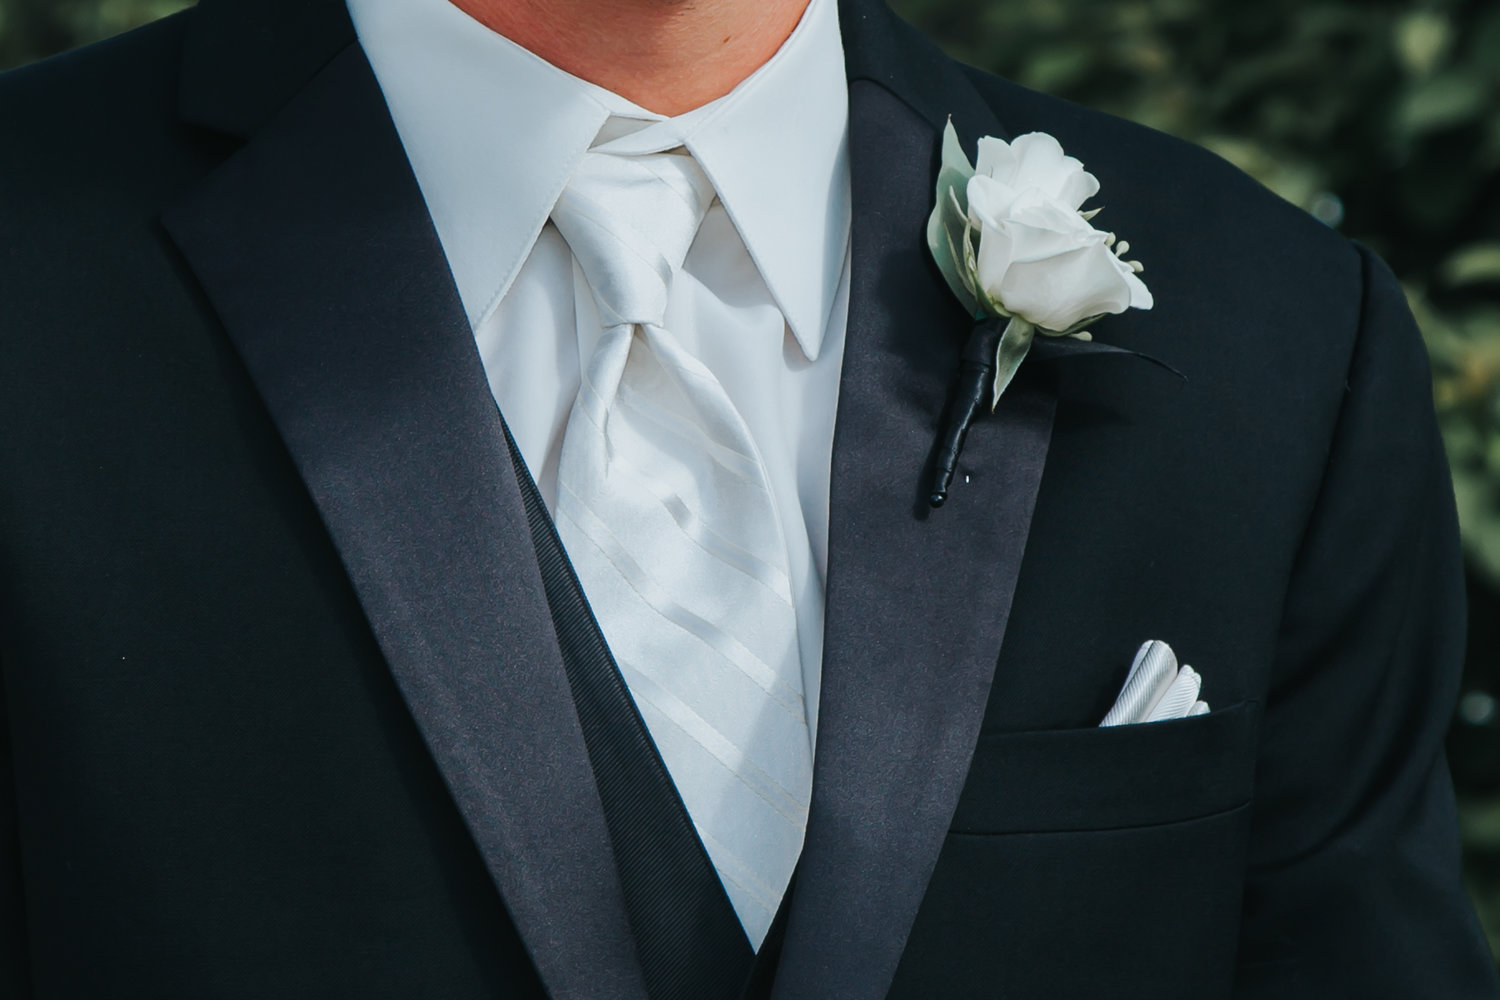 Boutonniere's start at $17 each